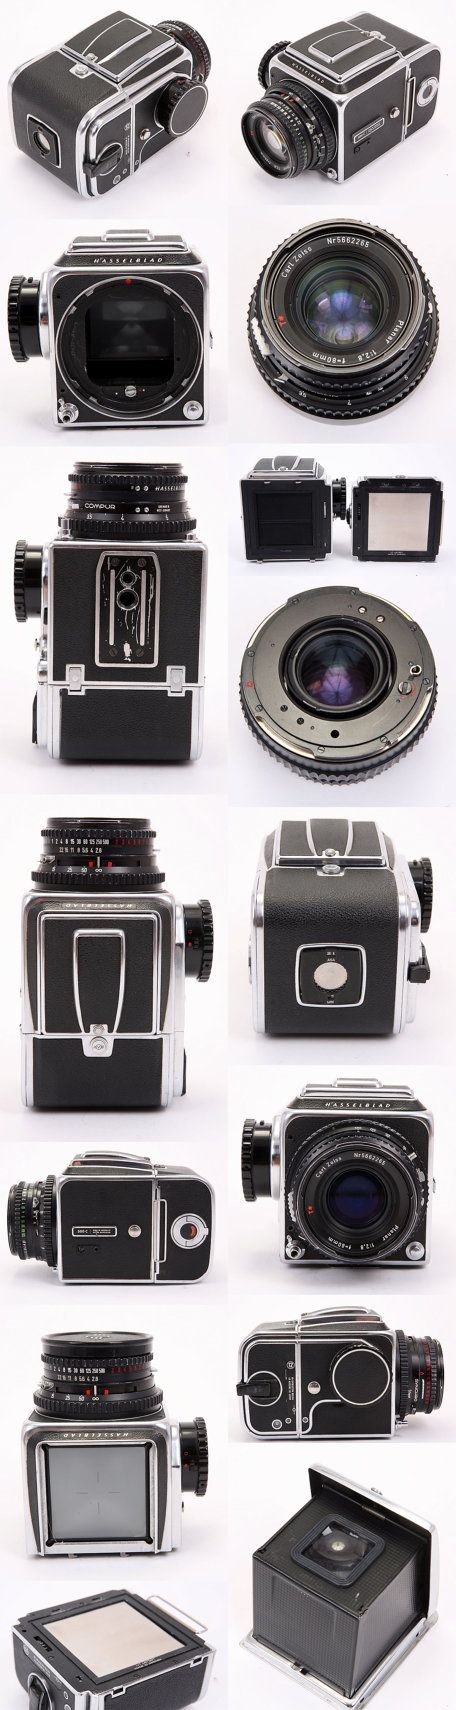 """Vintage Hasselblad 500C..THIS CAMERA WAS USED FOR 30+ YEARS IN MY PHOTOGRAPHY BUSINESS. ITS A CAMERA I COULD RECOMMEND TO ANYONE STARTING IN THE FIELD. DIGITAL IS GOOD, BUT THE 2 1/4"""" SQUARE NEG IS HARD TO BEAT FOR ENLARGEMENTS."""